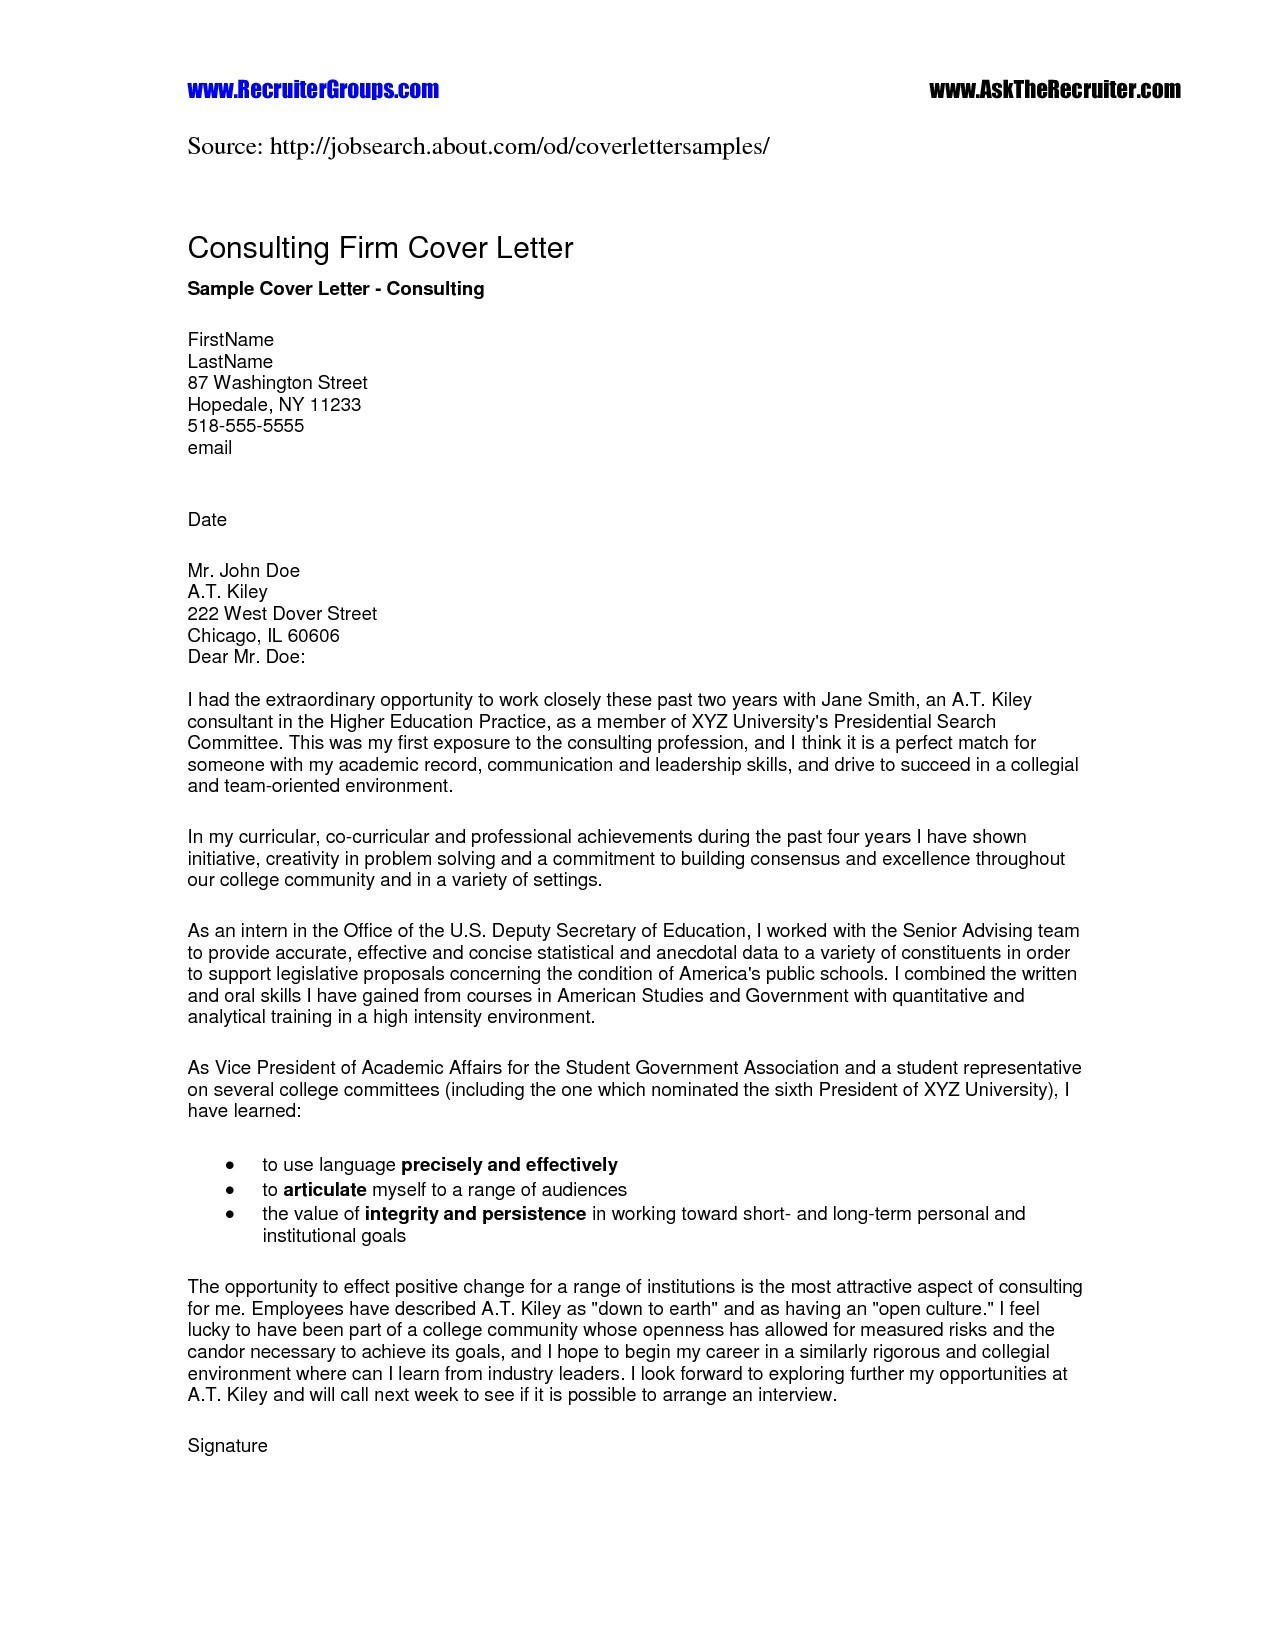 Formal Cover Letter Template   Business Cover Letter Format Sample Fresh Format  Business Cover